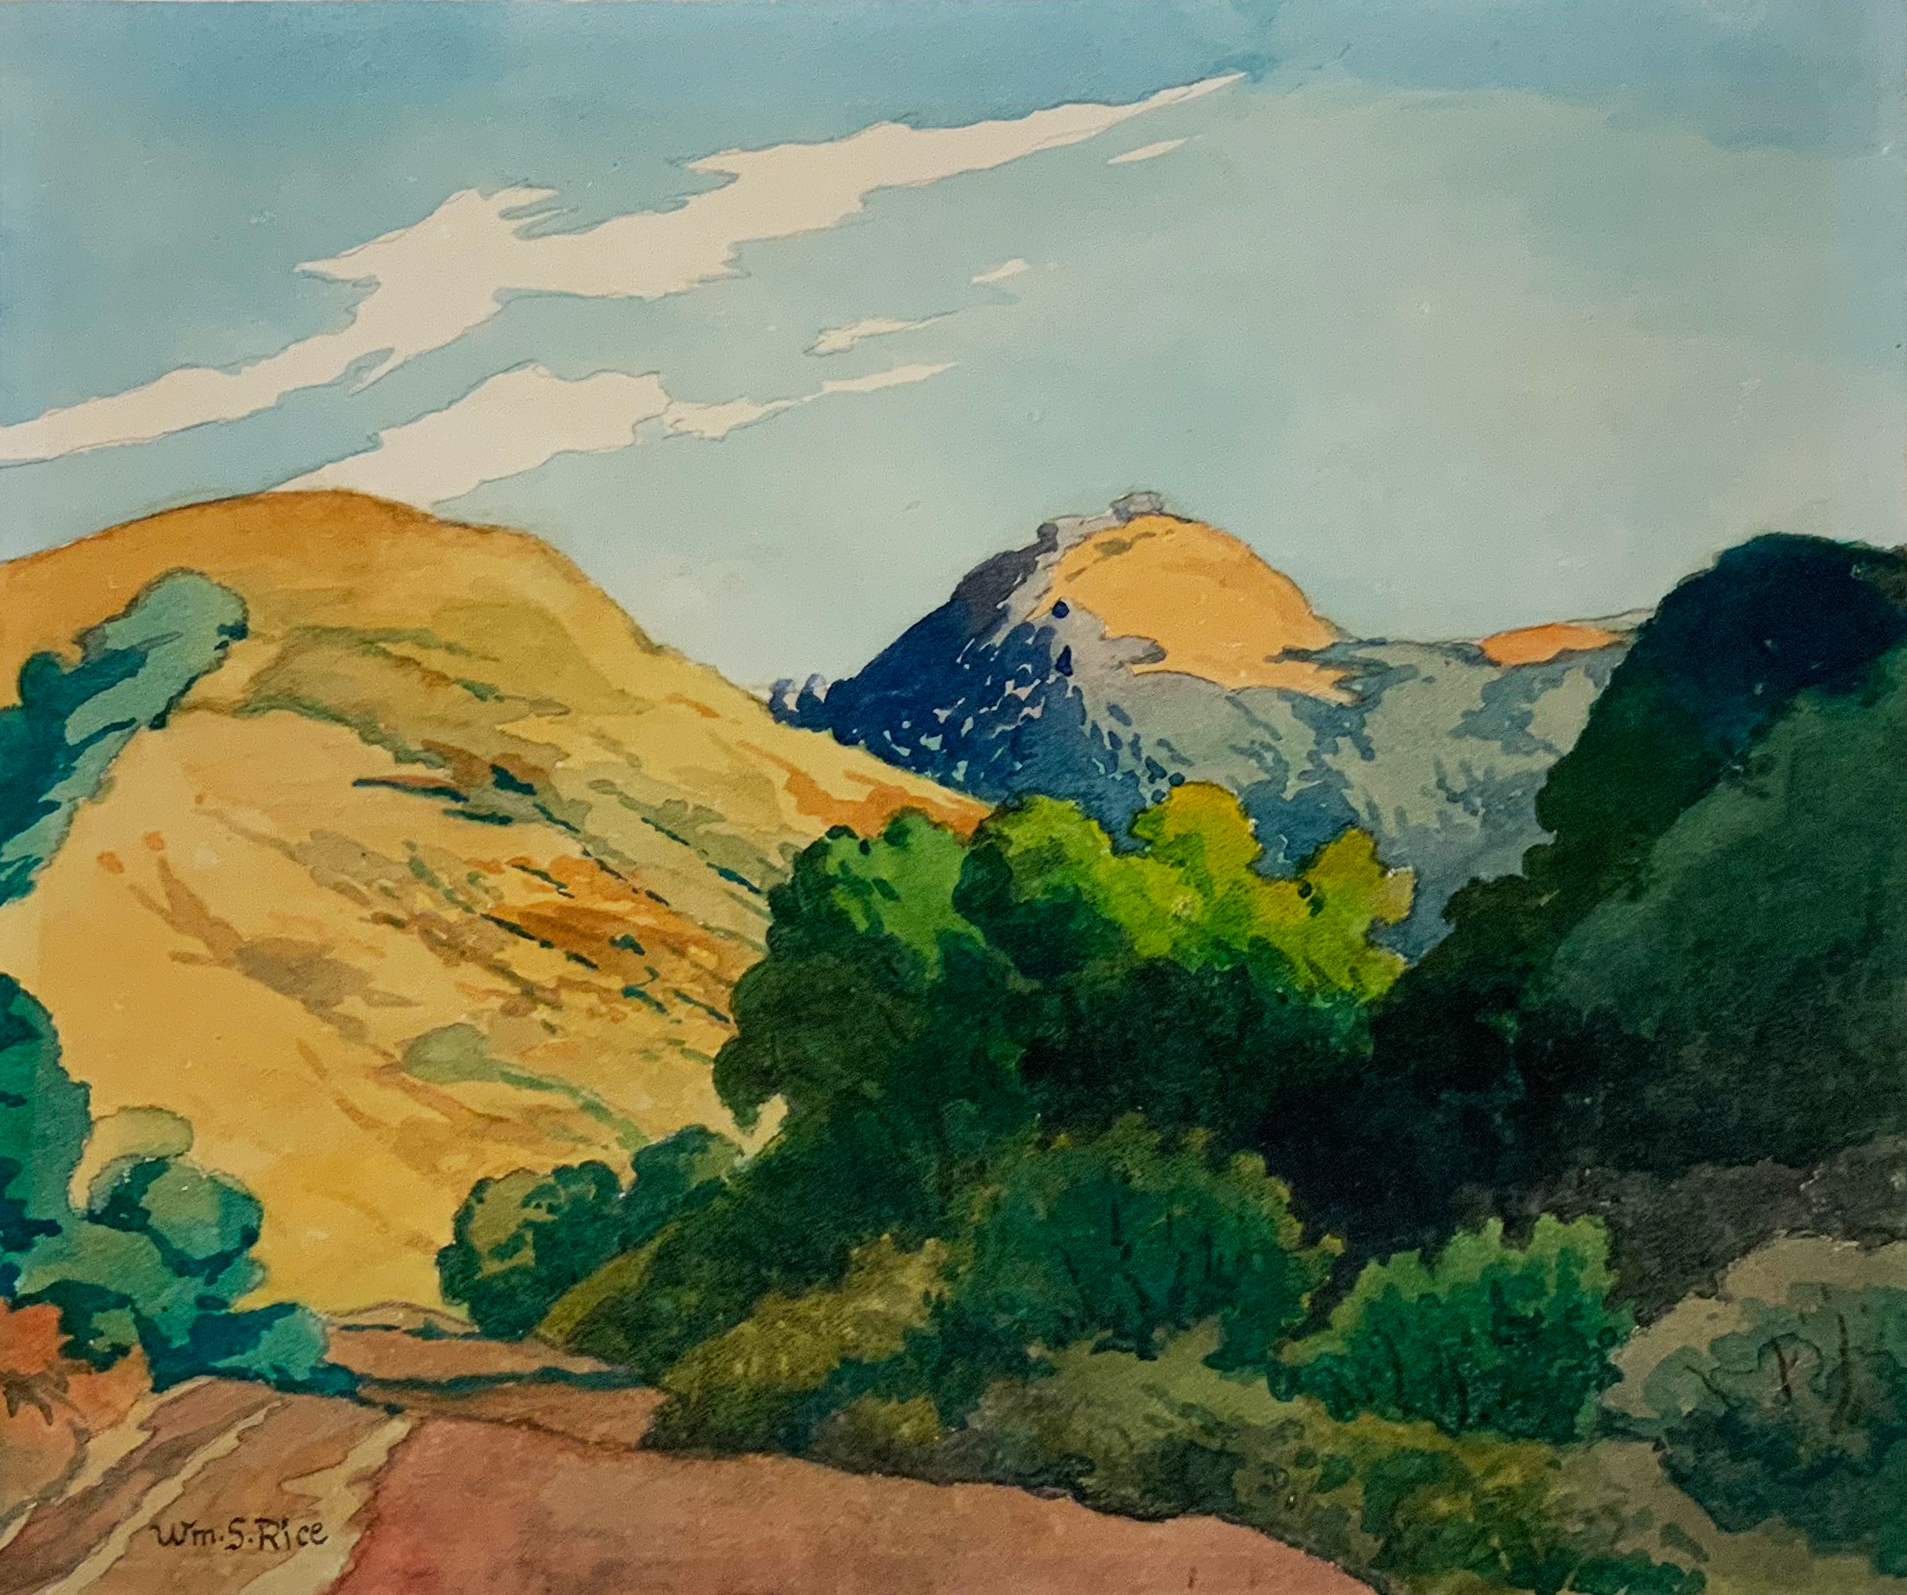 Untitled (Bay Area Hills), William S. Rice (1873-1963), n.d. watercolor on paper, 13 x 15 5/8 inches. Collection of Saint Mary's College Museum of Art Permanent Collection [2006.7.2]